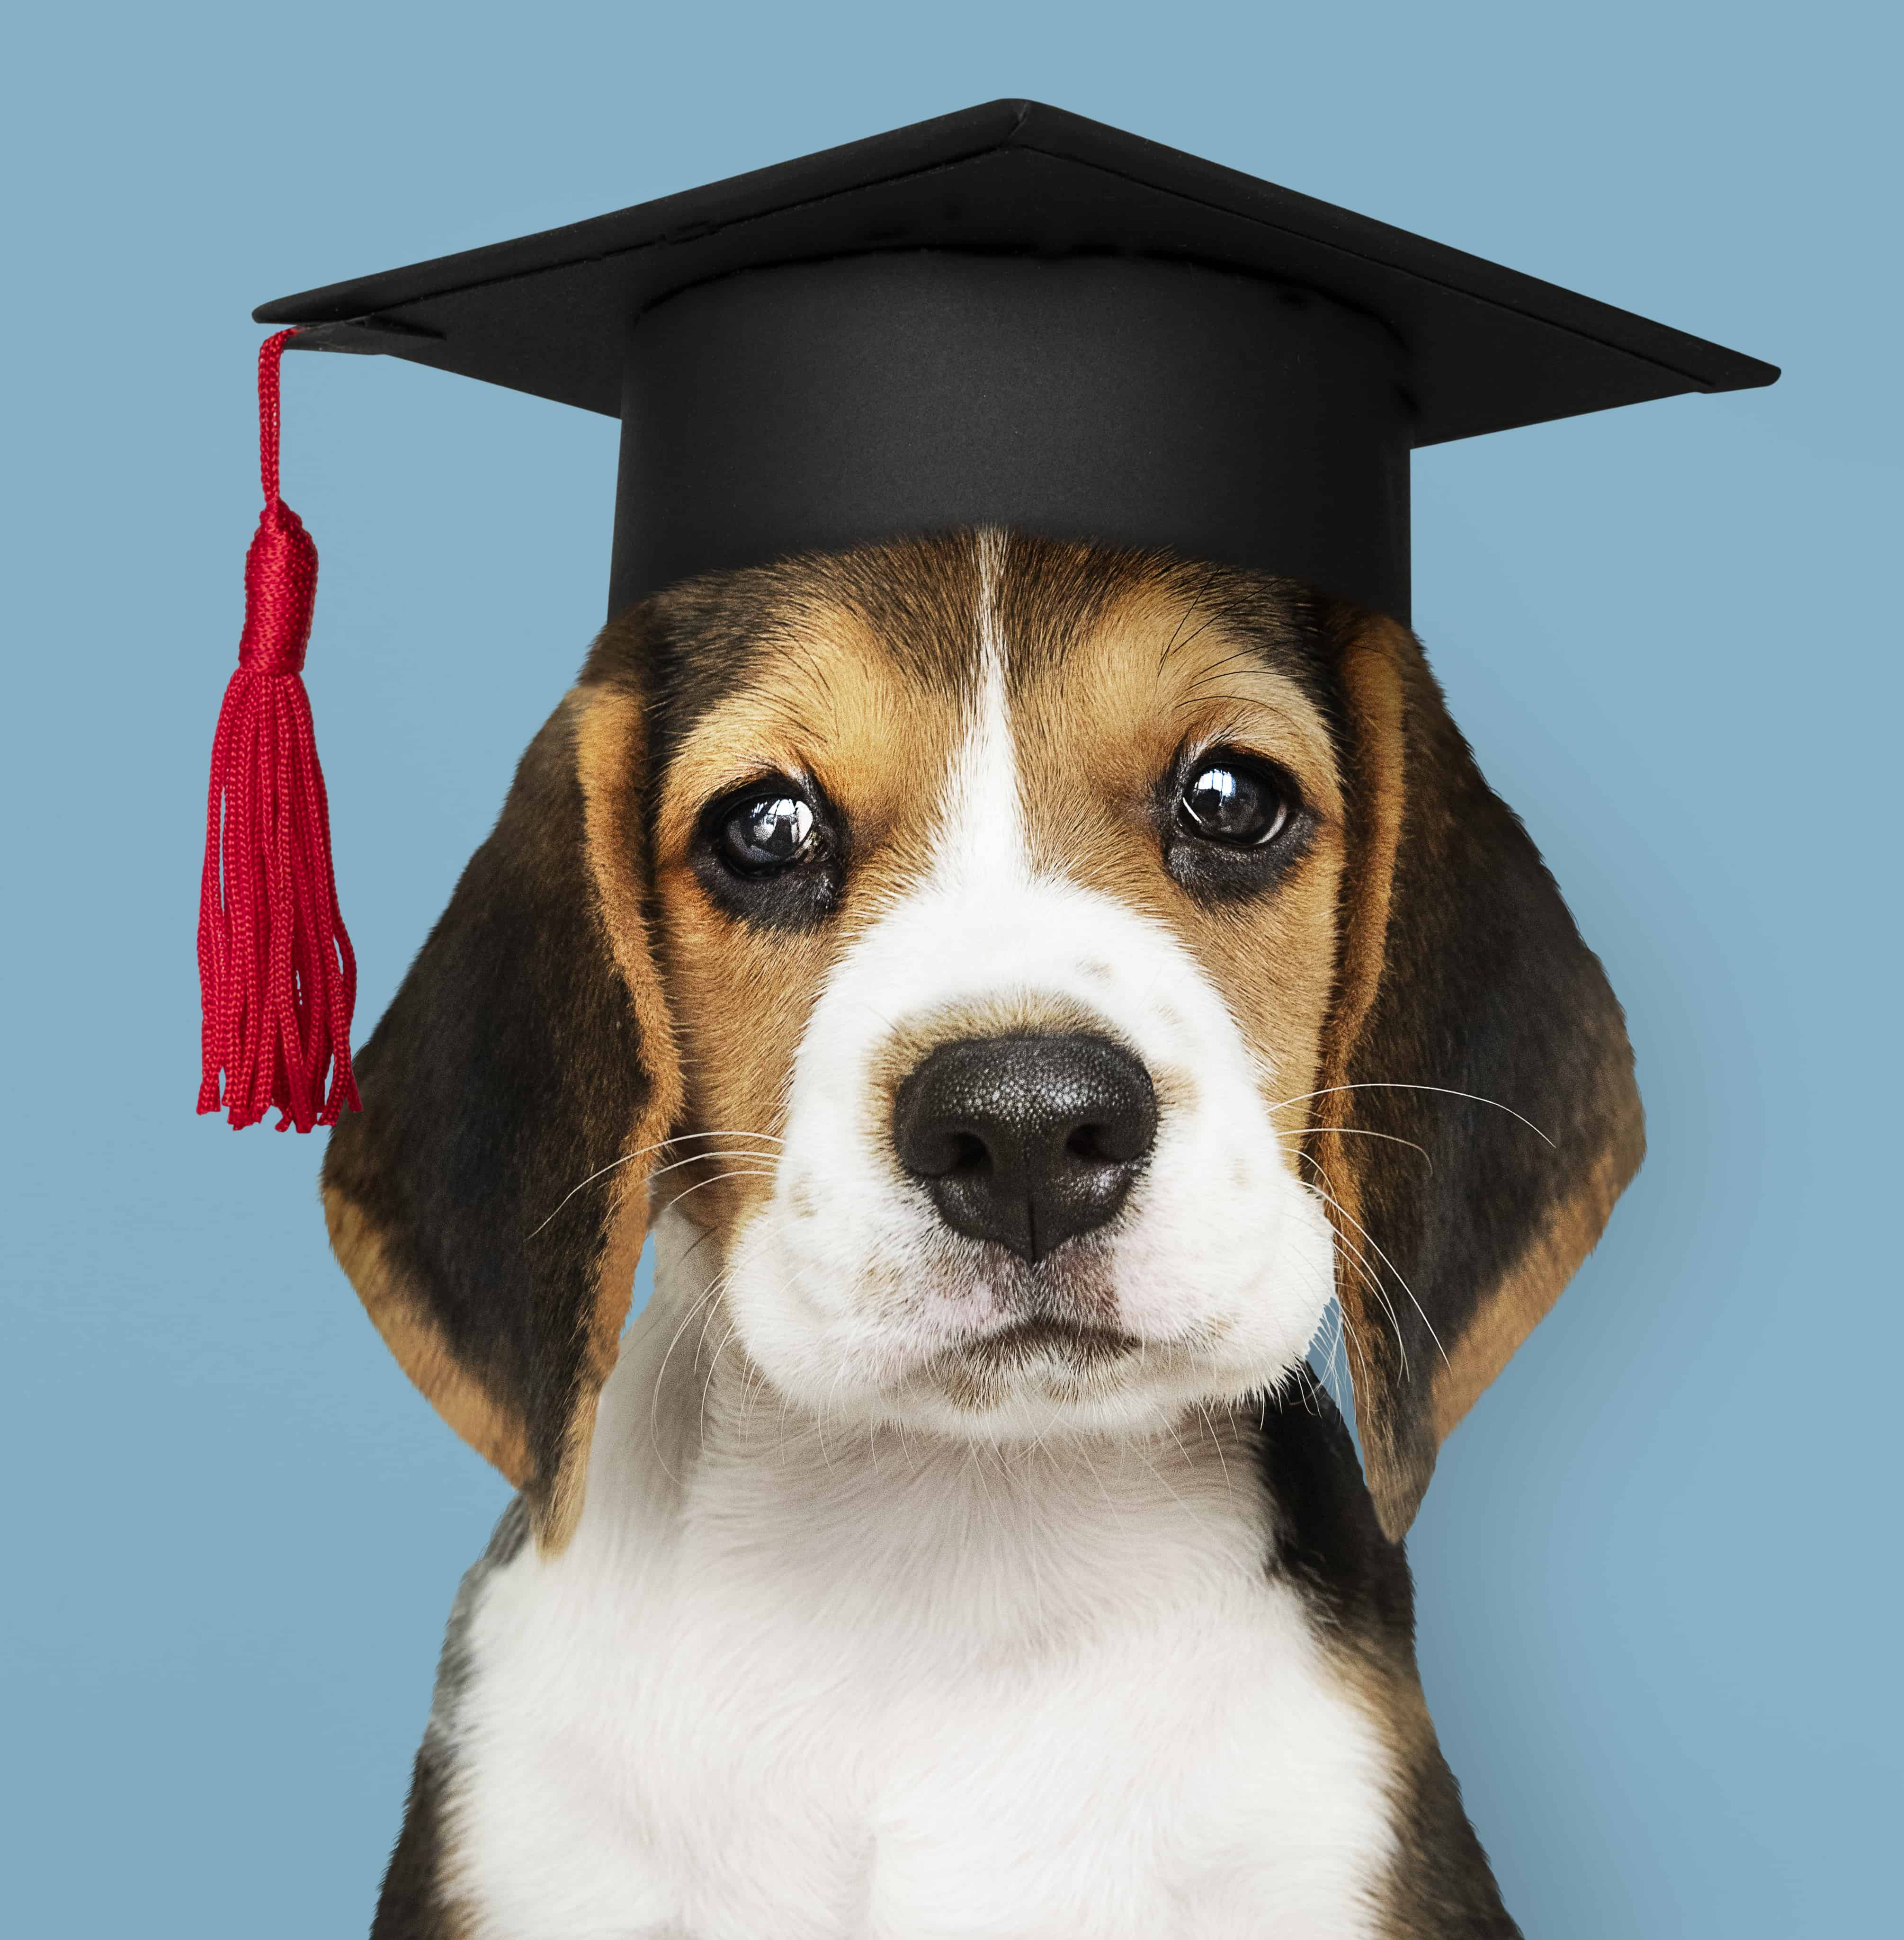 puppy wearing graduation cap